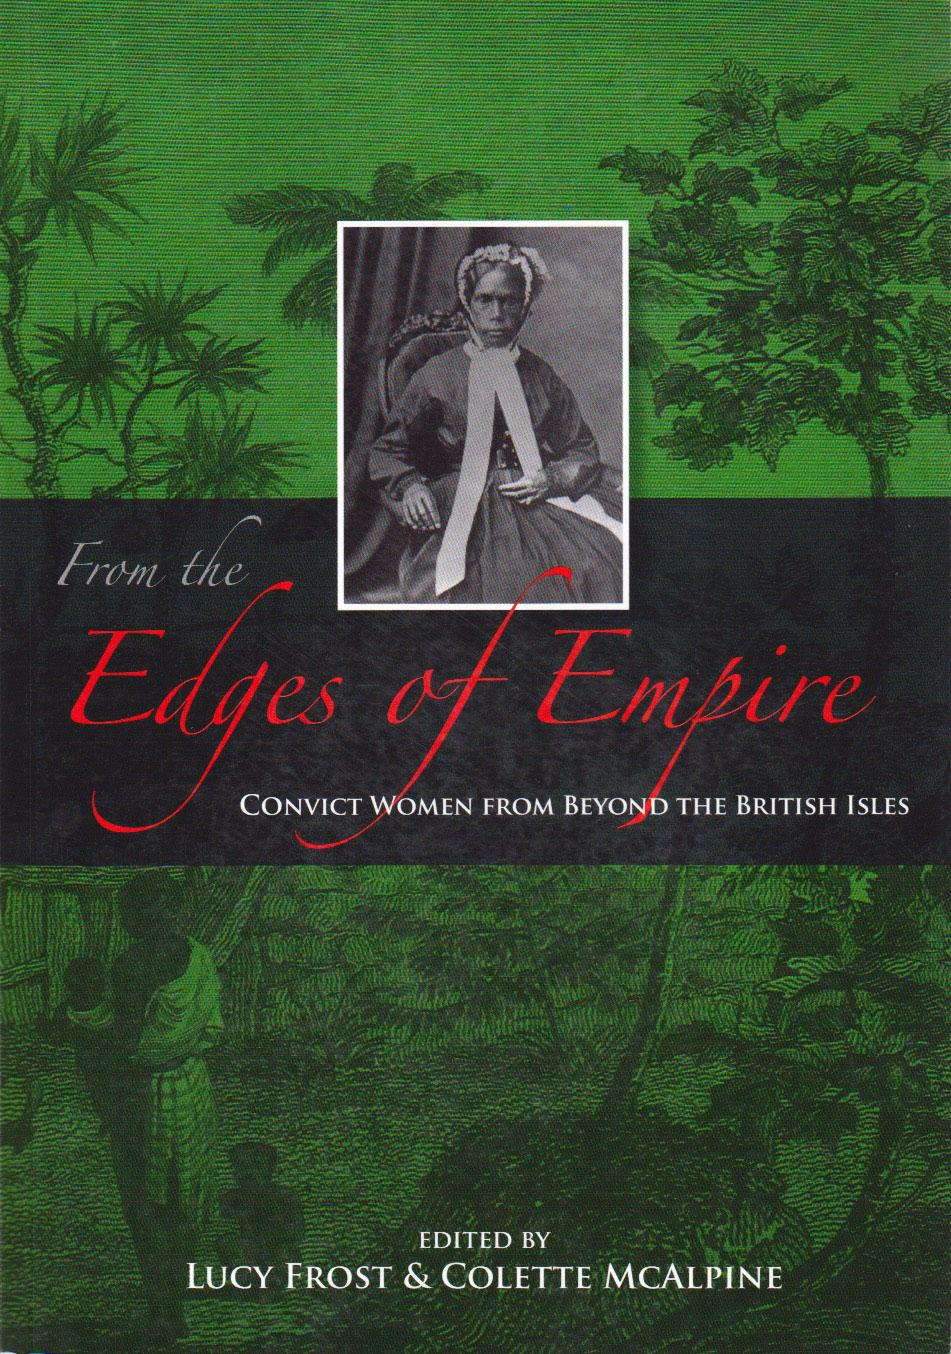 From the Edges of Empire - Convict Women from Beyond the British Isles